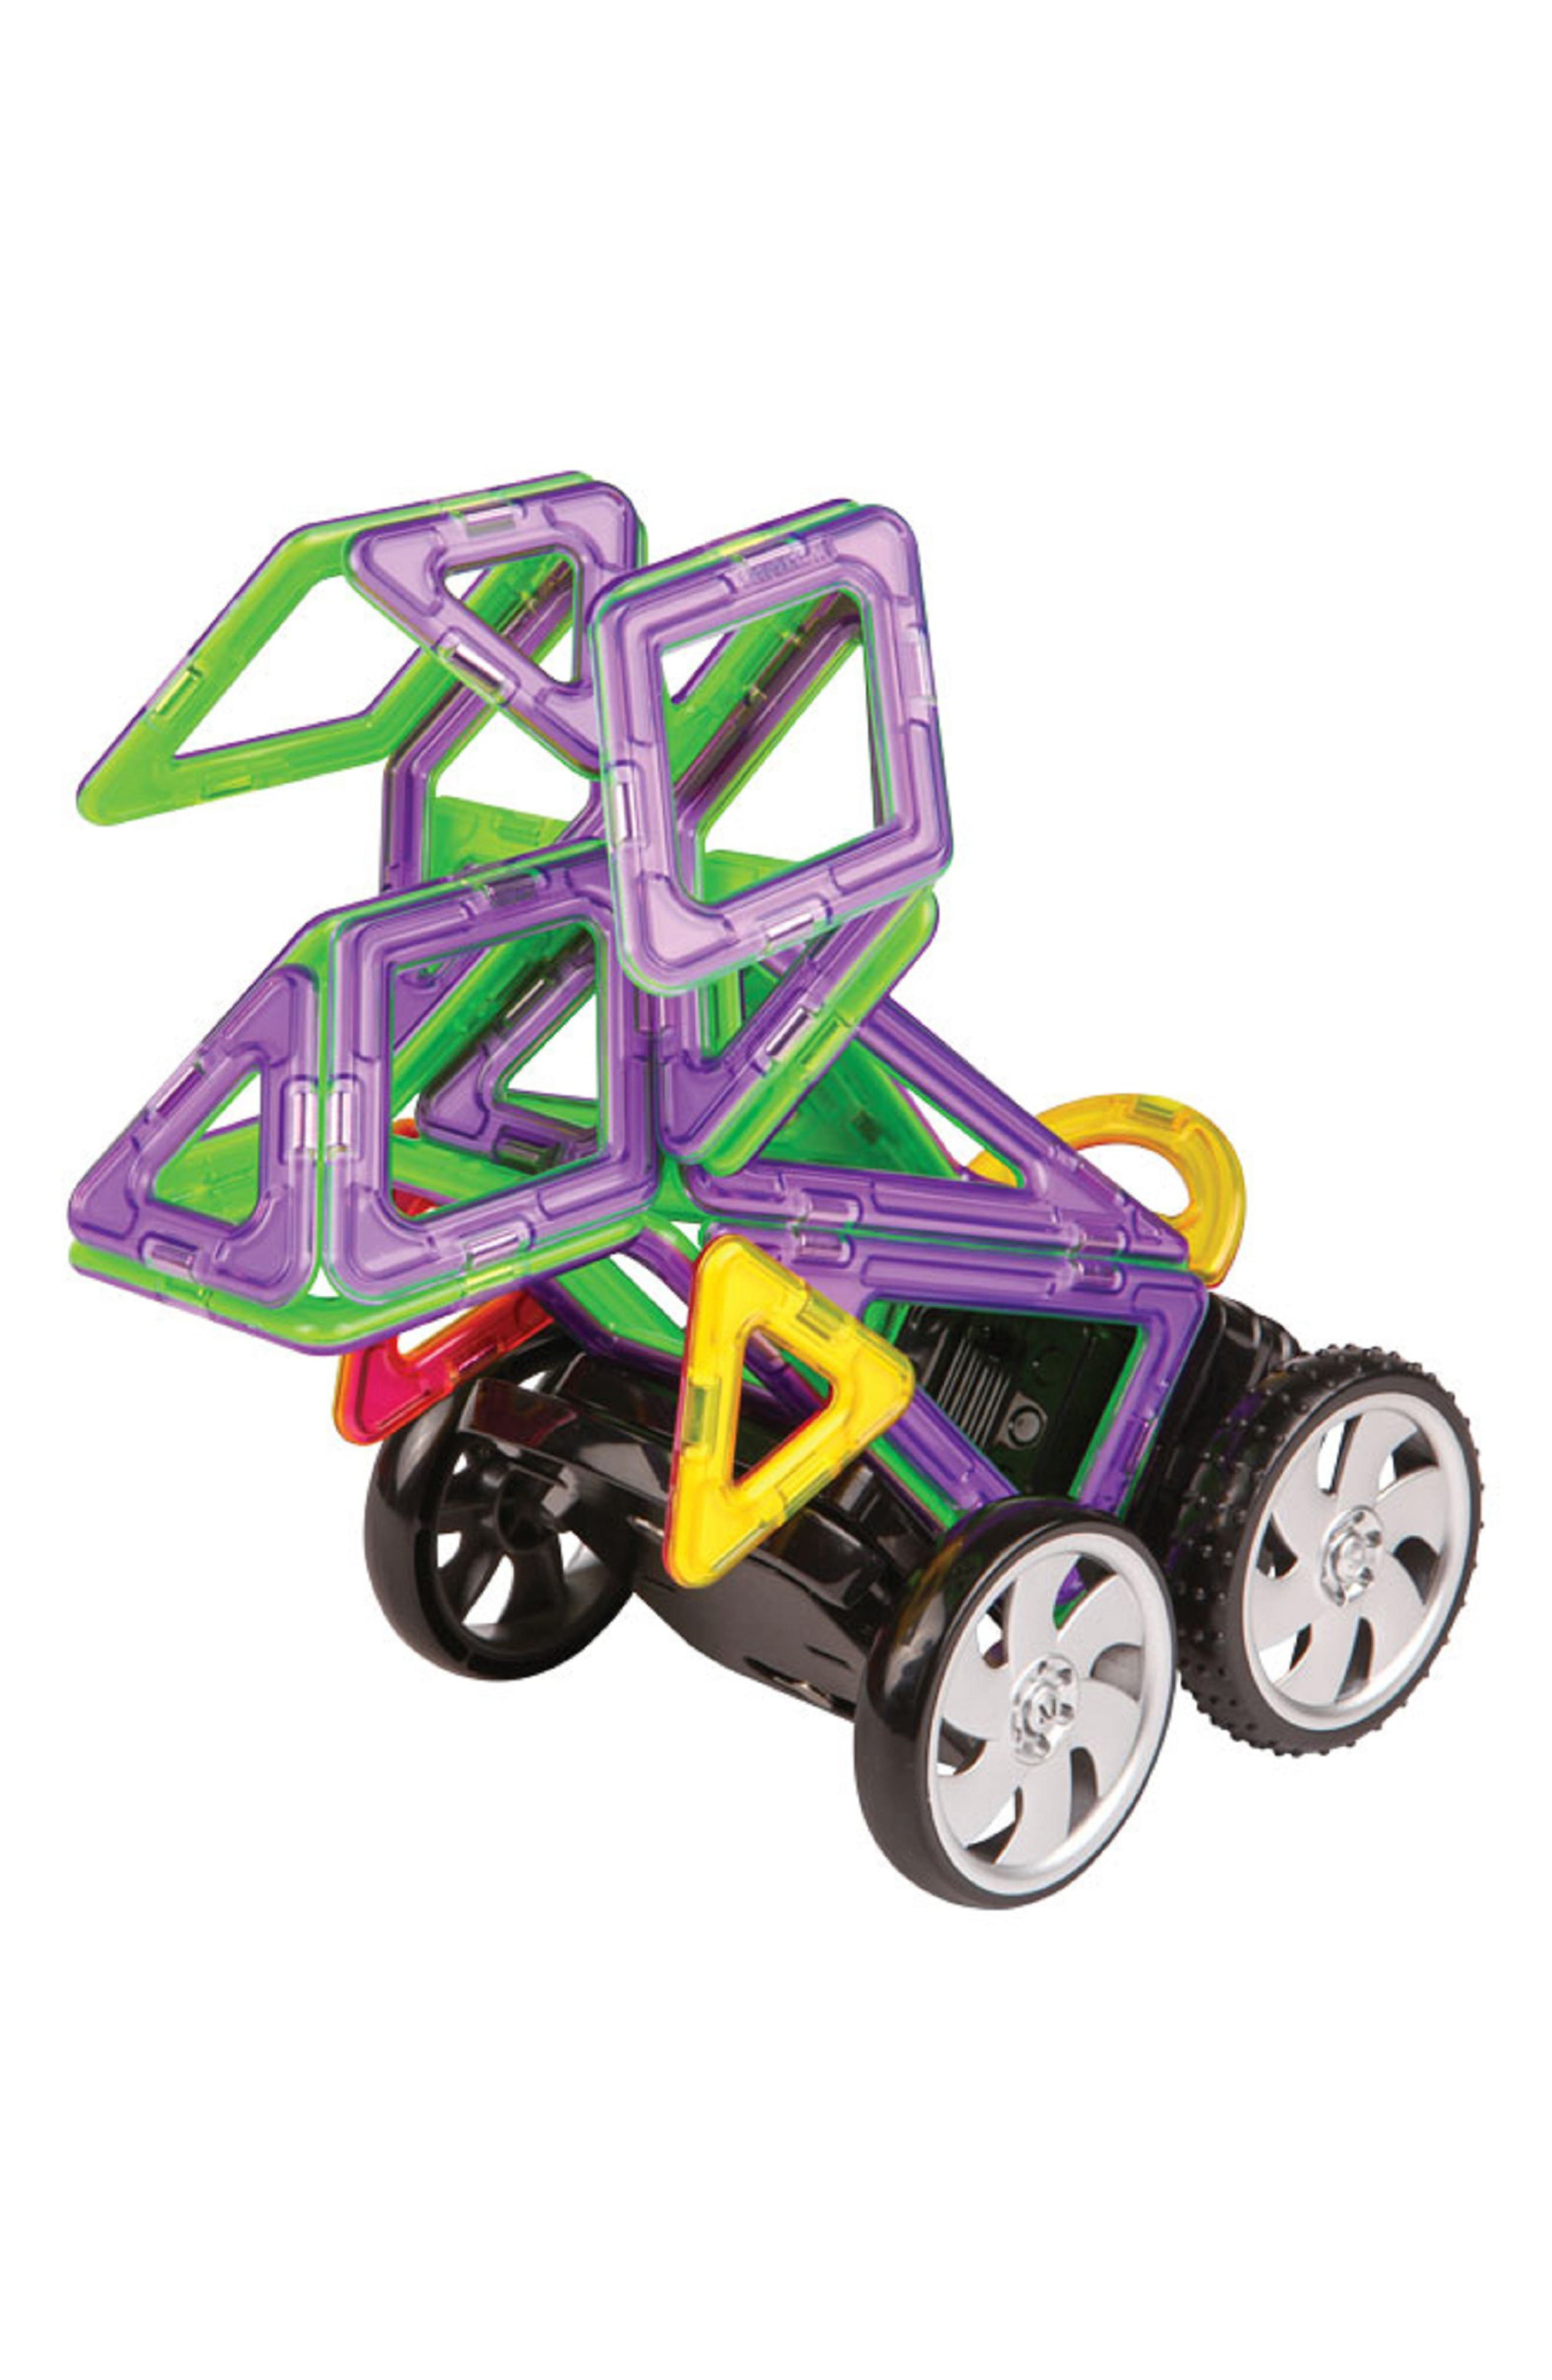 'Zoo Racing' Magnetic Remote Control Vehicle Construction Set,                             Alternate thumbnail 2, color,                             Rainbow